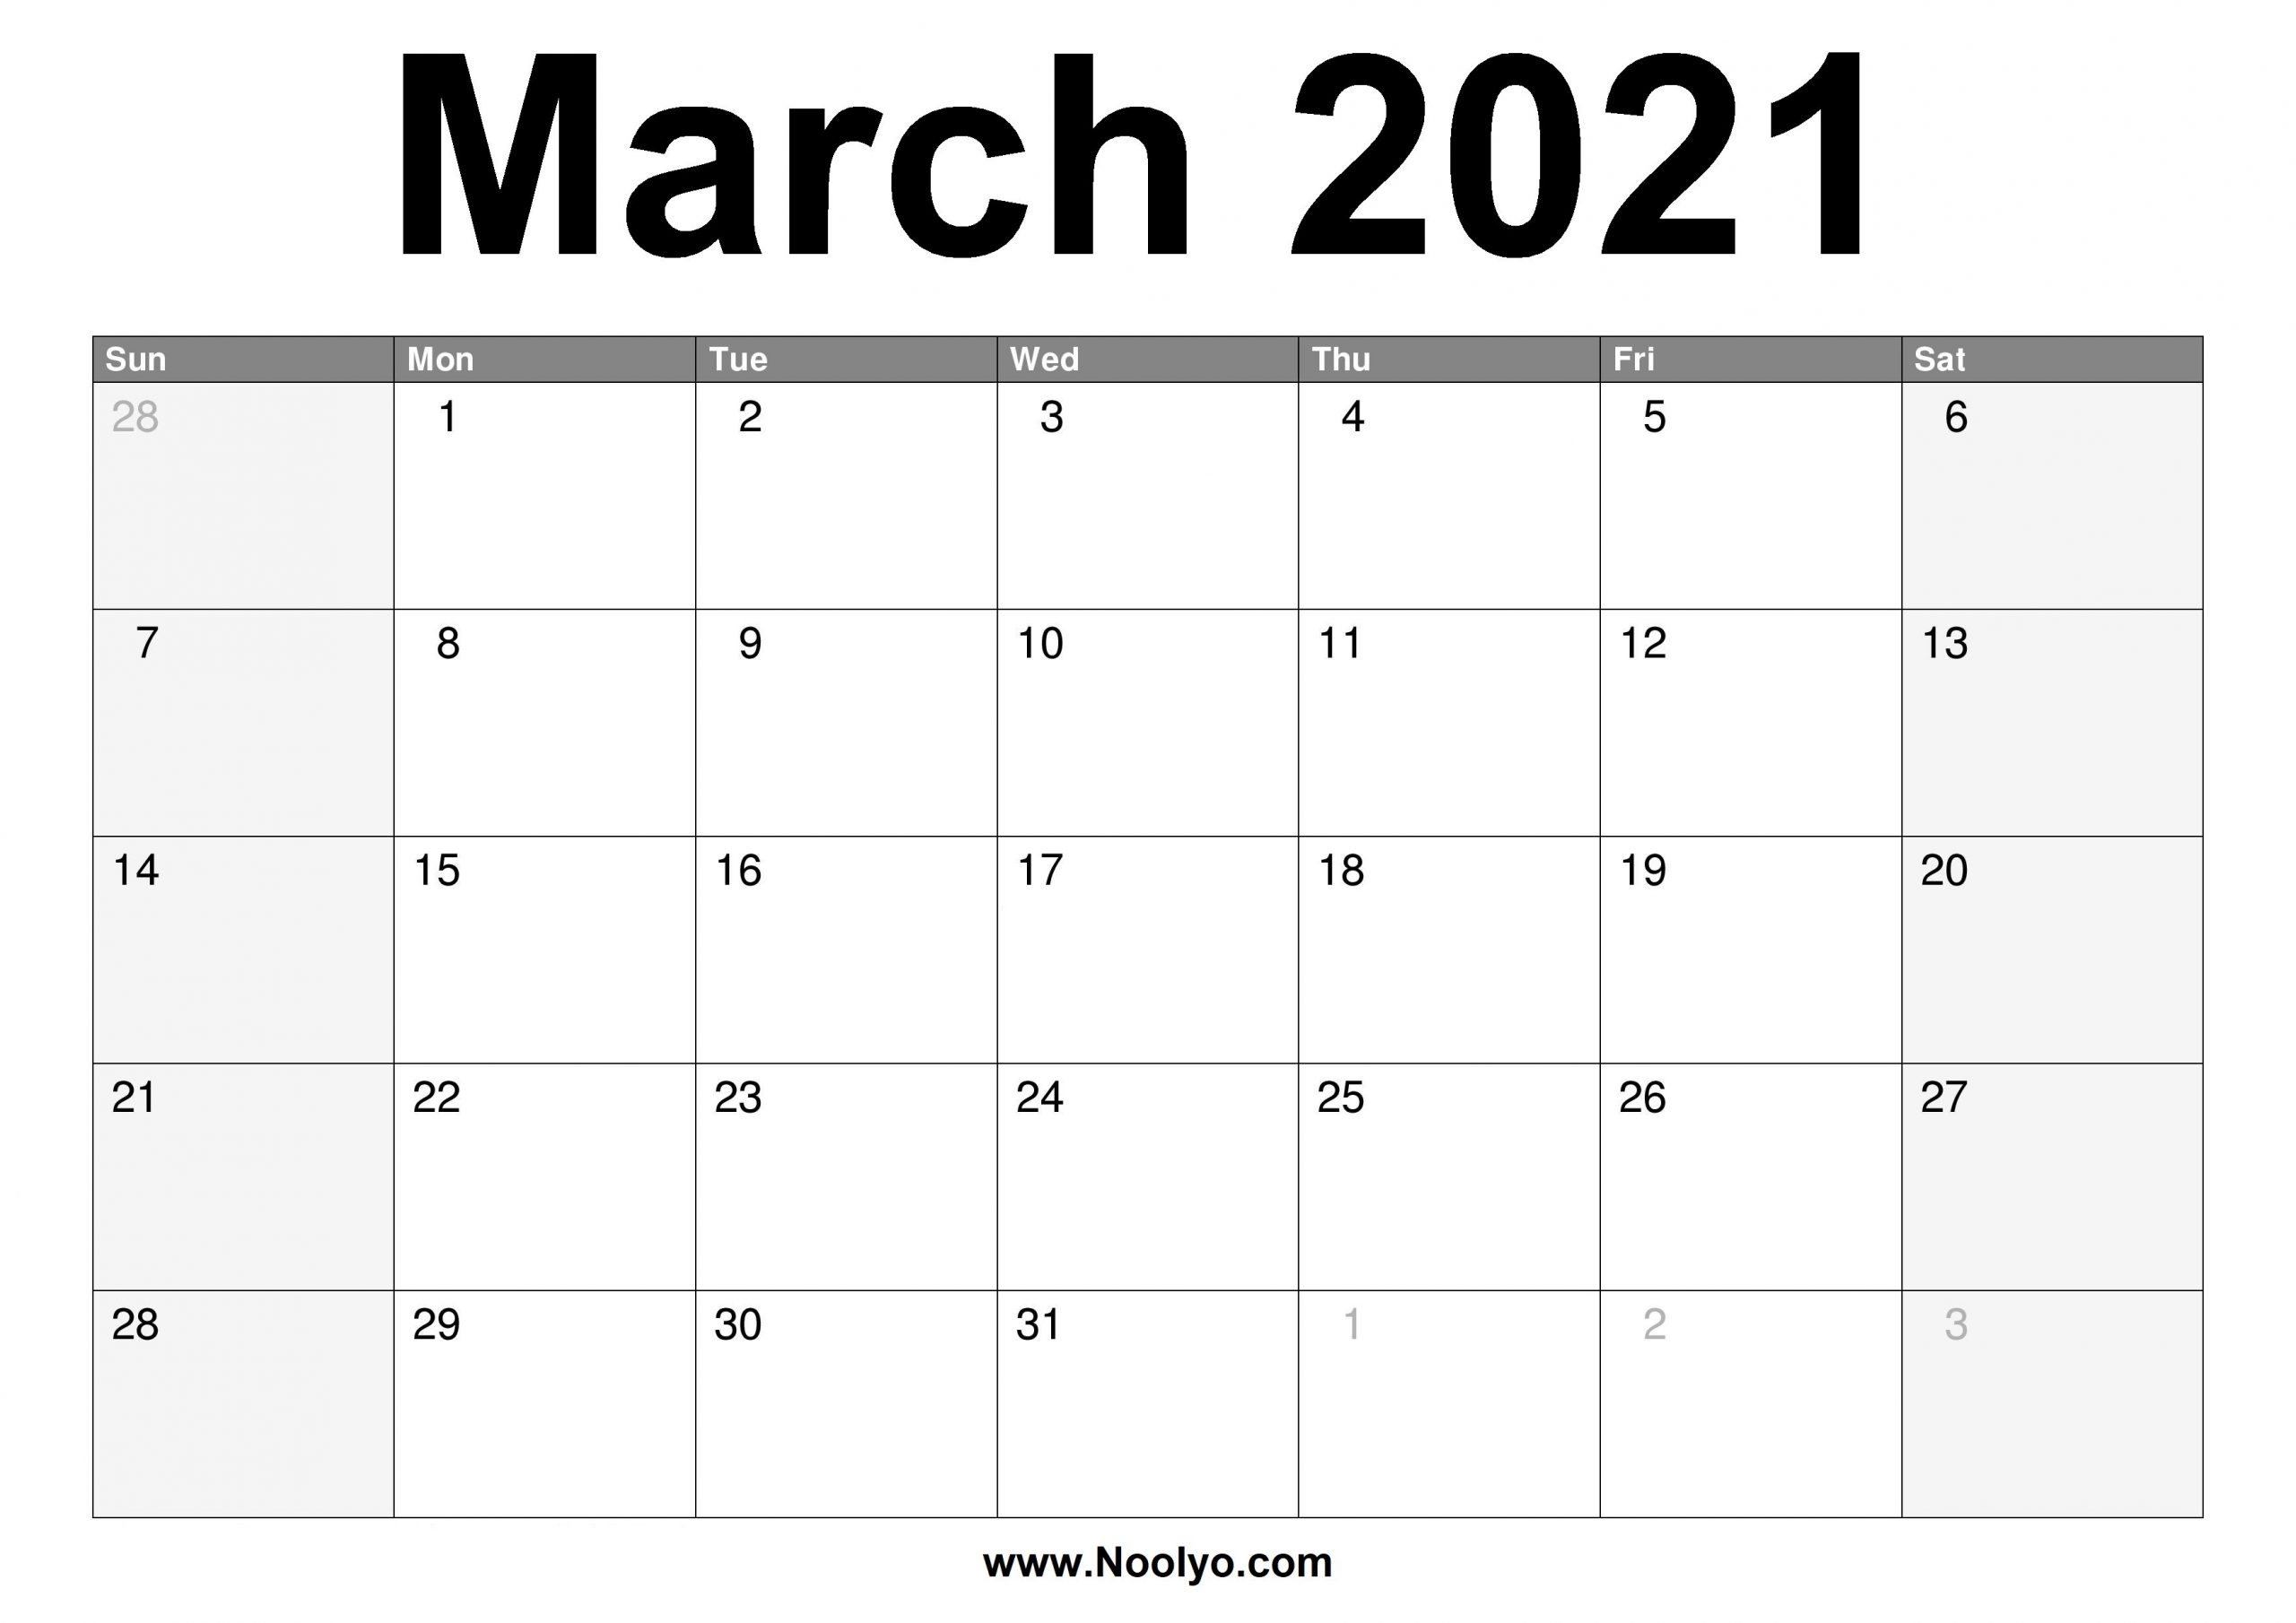 March 2021 Calendar Printable – Free Download – Noolyo  Free Monthly Calendar Printable March 2021